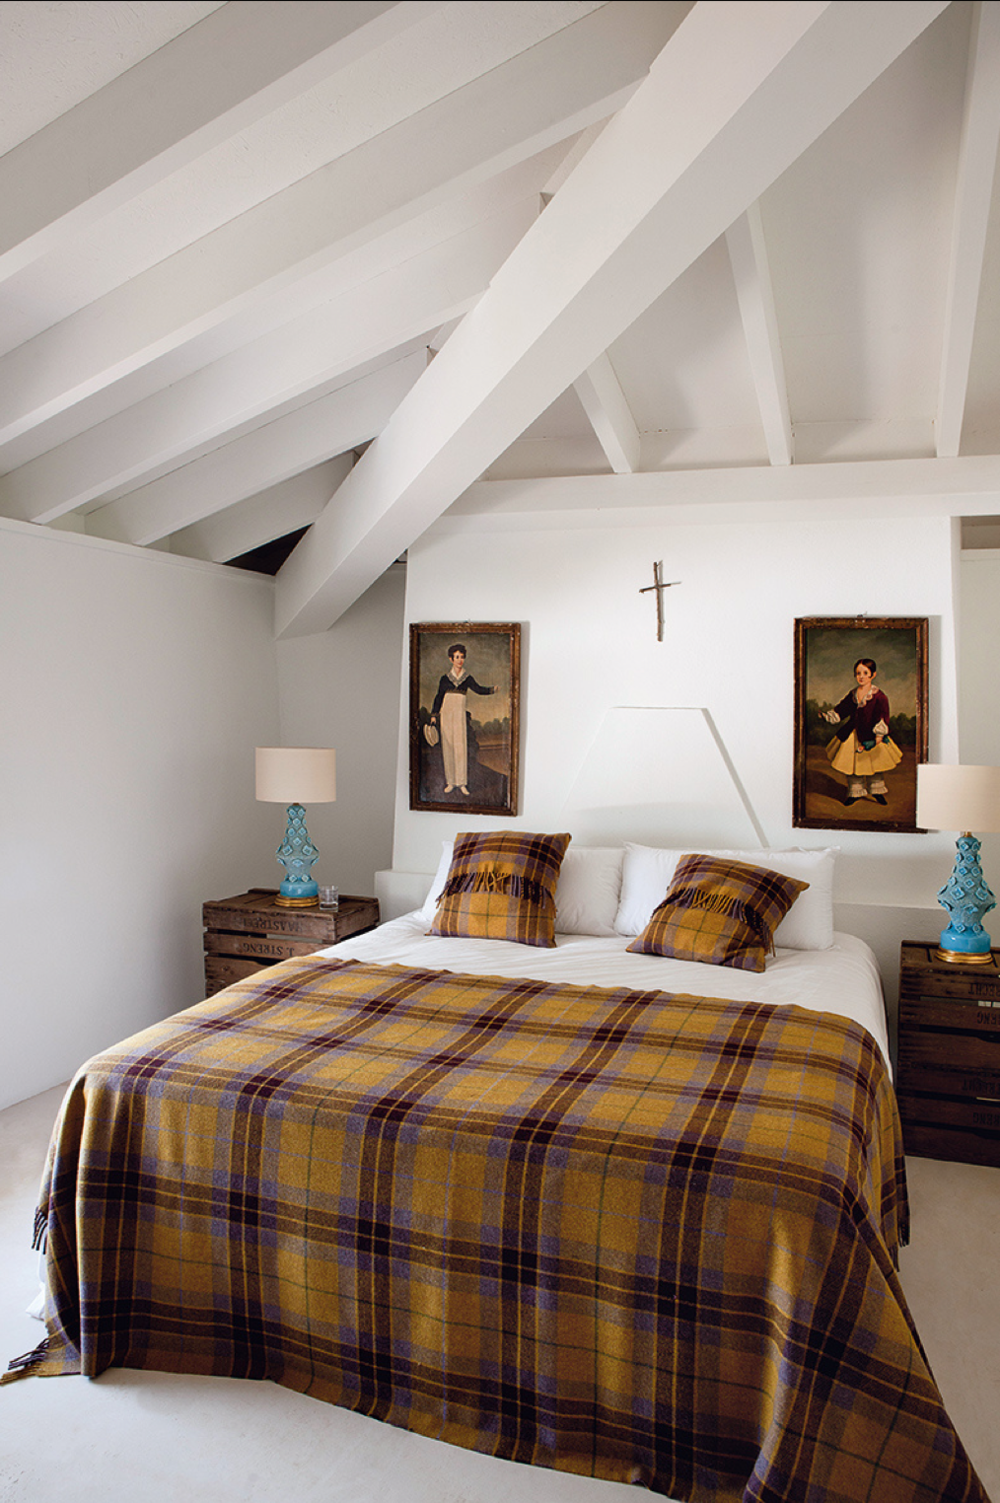 In love with the wall art, the plaid bedspread and the sweet cross.